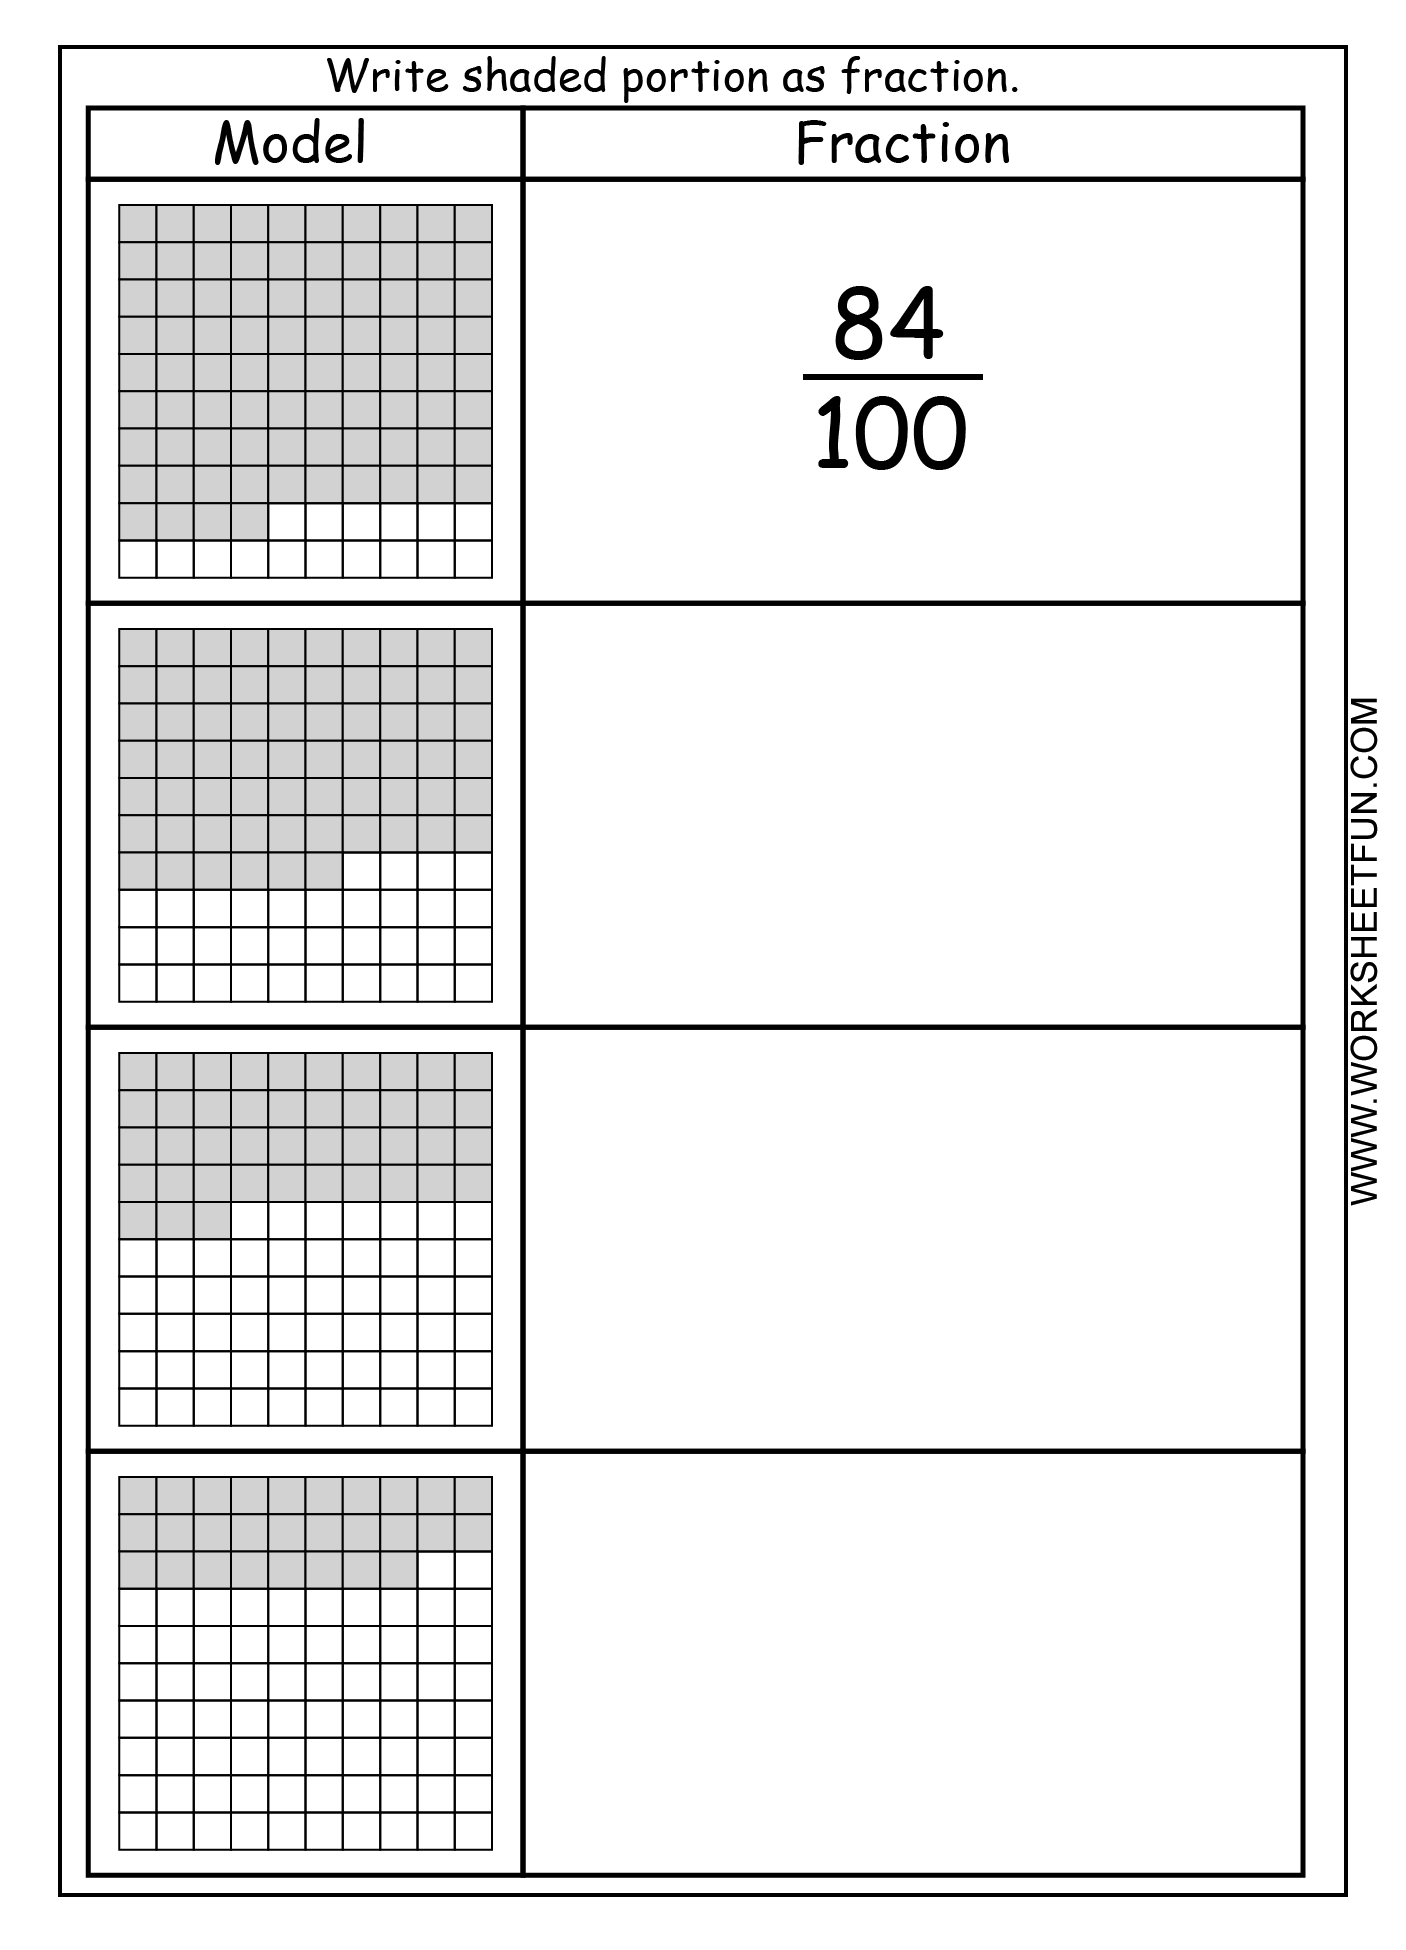 Fraction Model Hundredths 4 Worksheets Free Printable Worksheets Worksheetfun